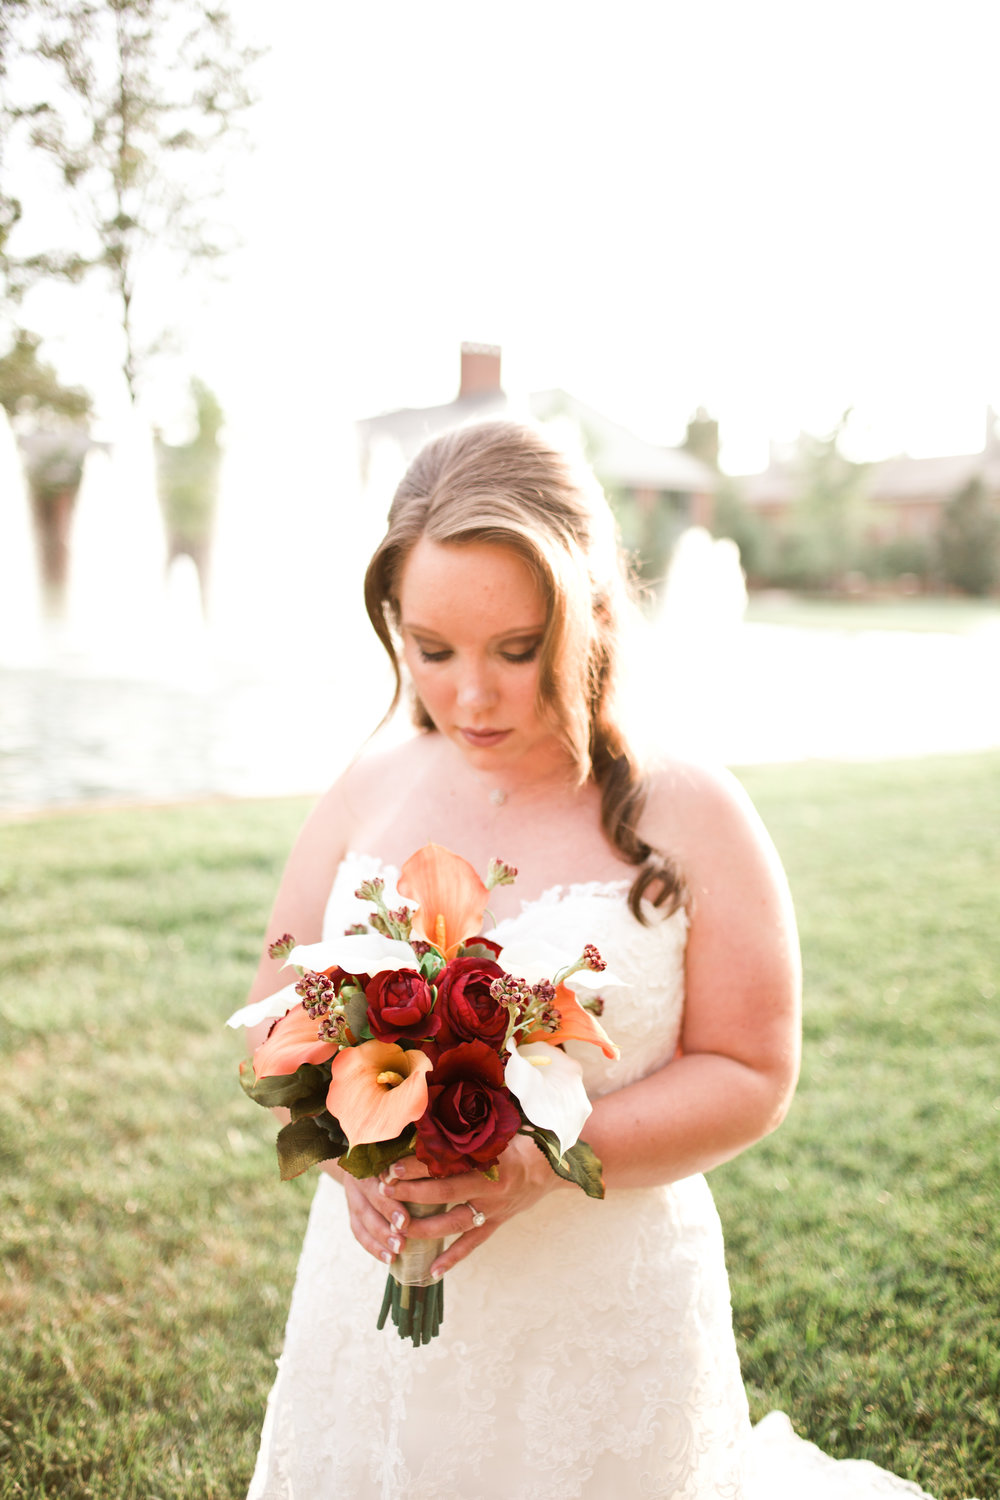 gabbie_bridal_poured_out_photography-62.jpg